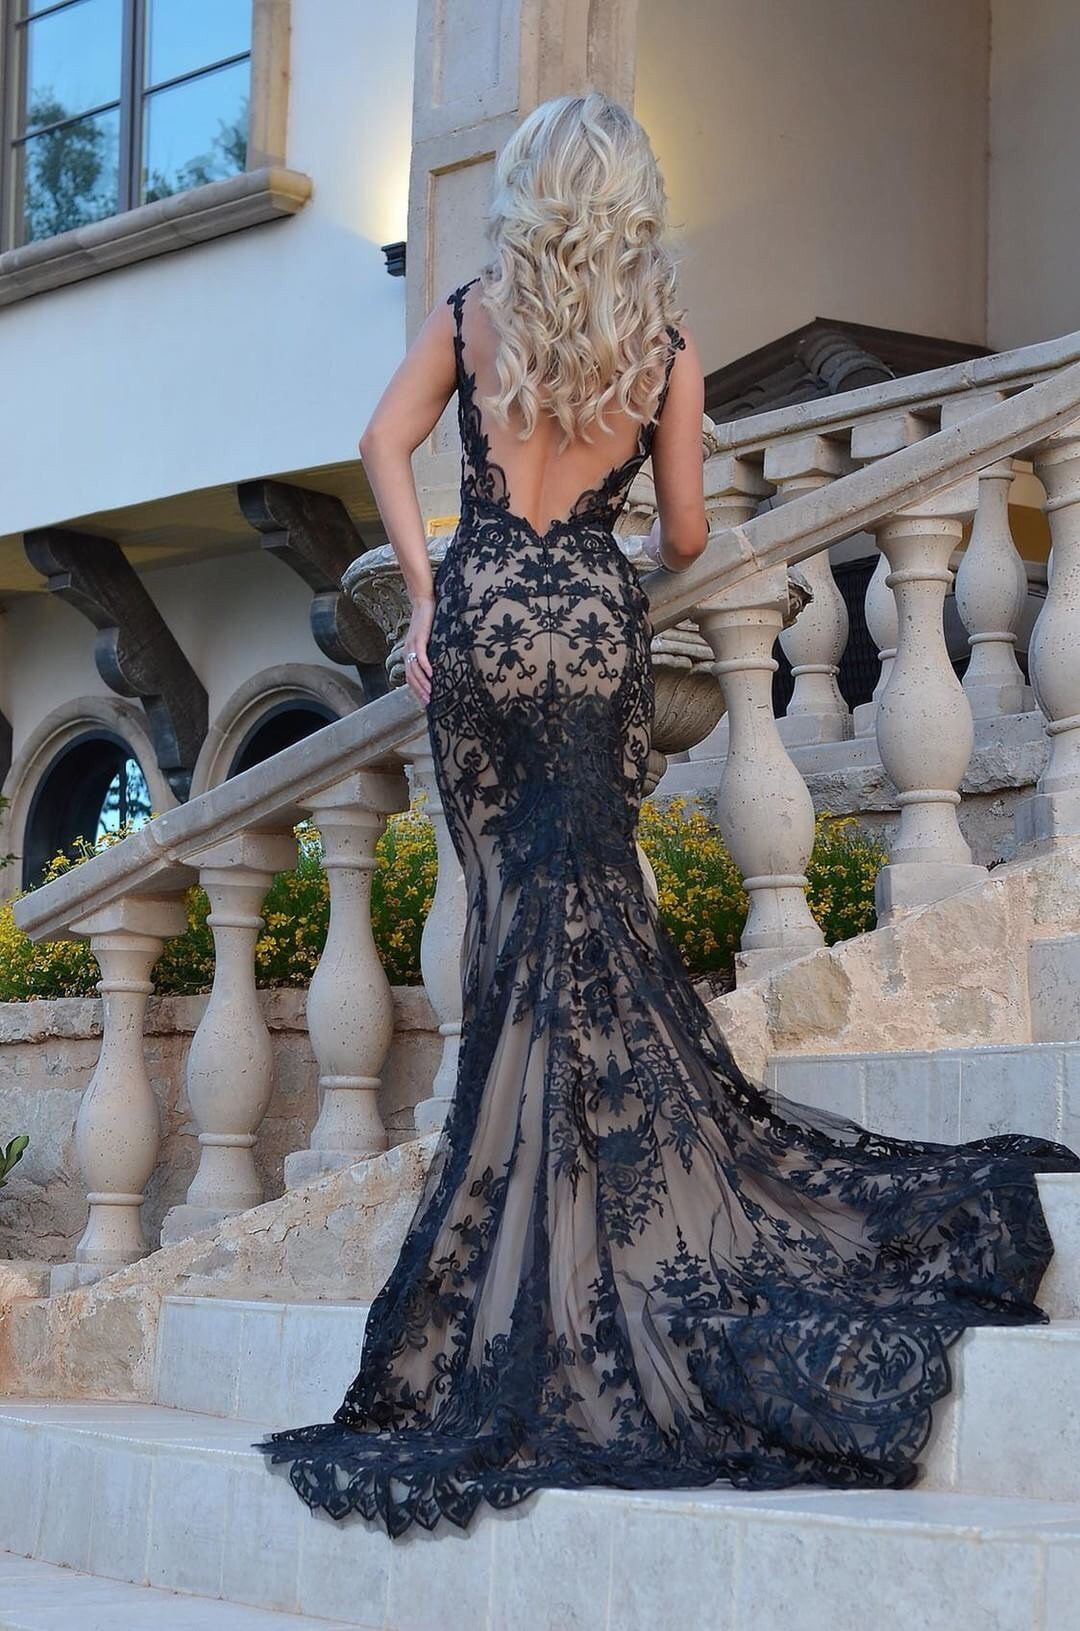 Hampton Gown Low Back Lace Gown With A Beautiful Long Train Mia Bella Couture Black Lace Wedding Black Wedding Gowns Black Wedding Dresses [ 1631 x 1080 Pixel ]